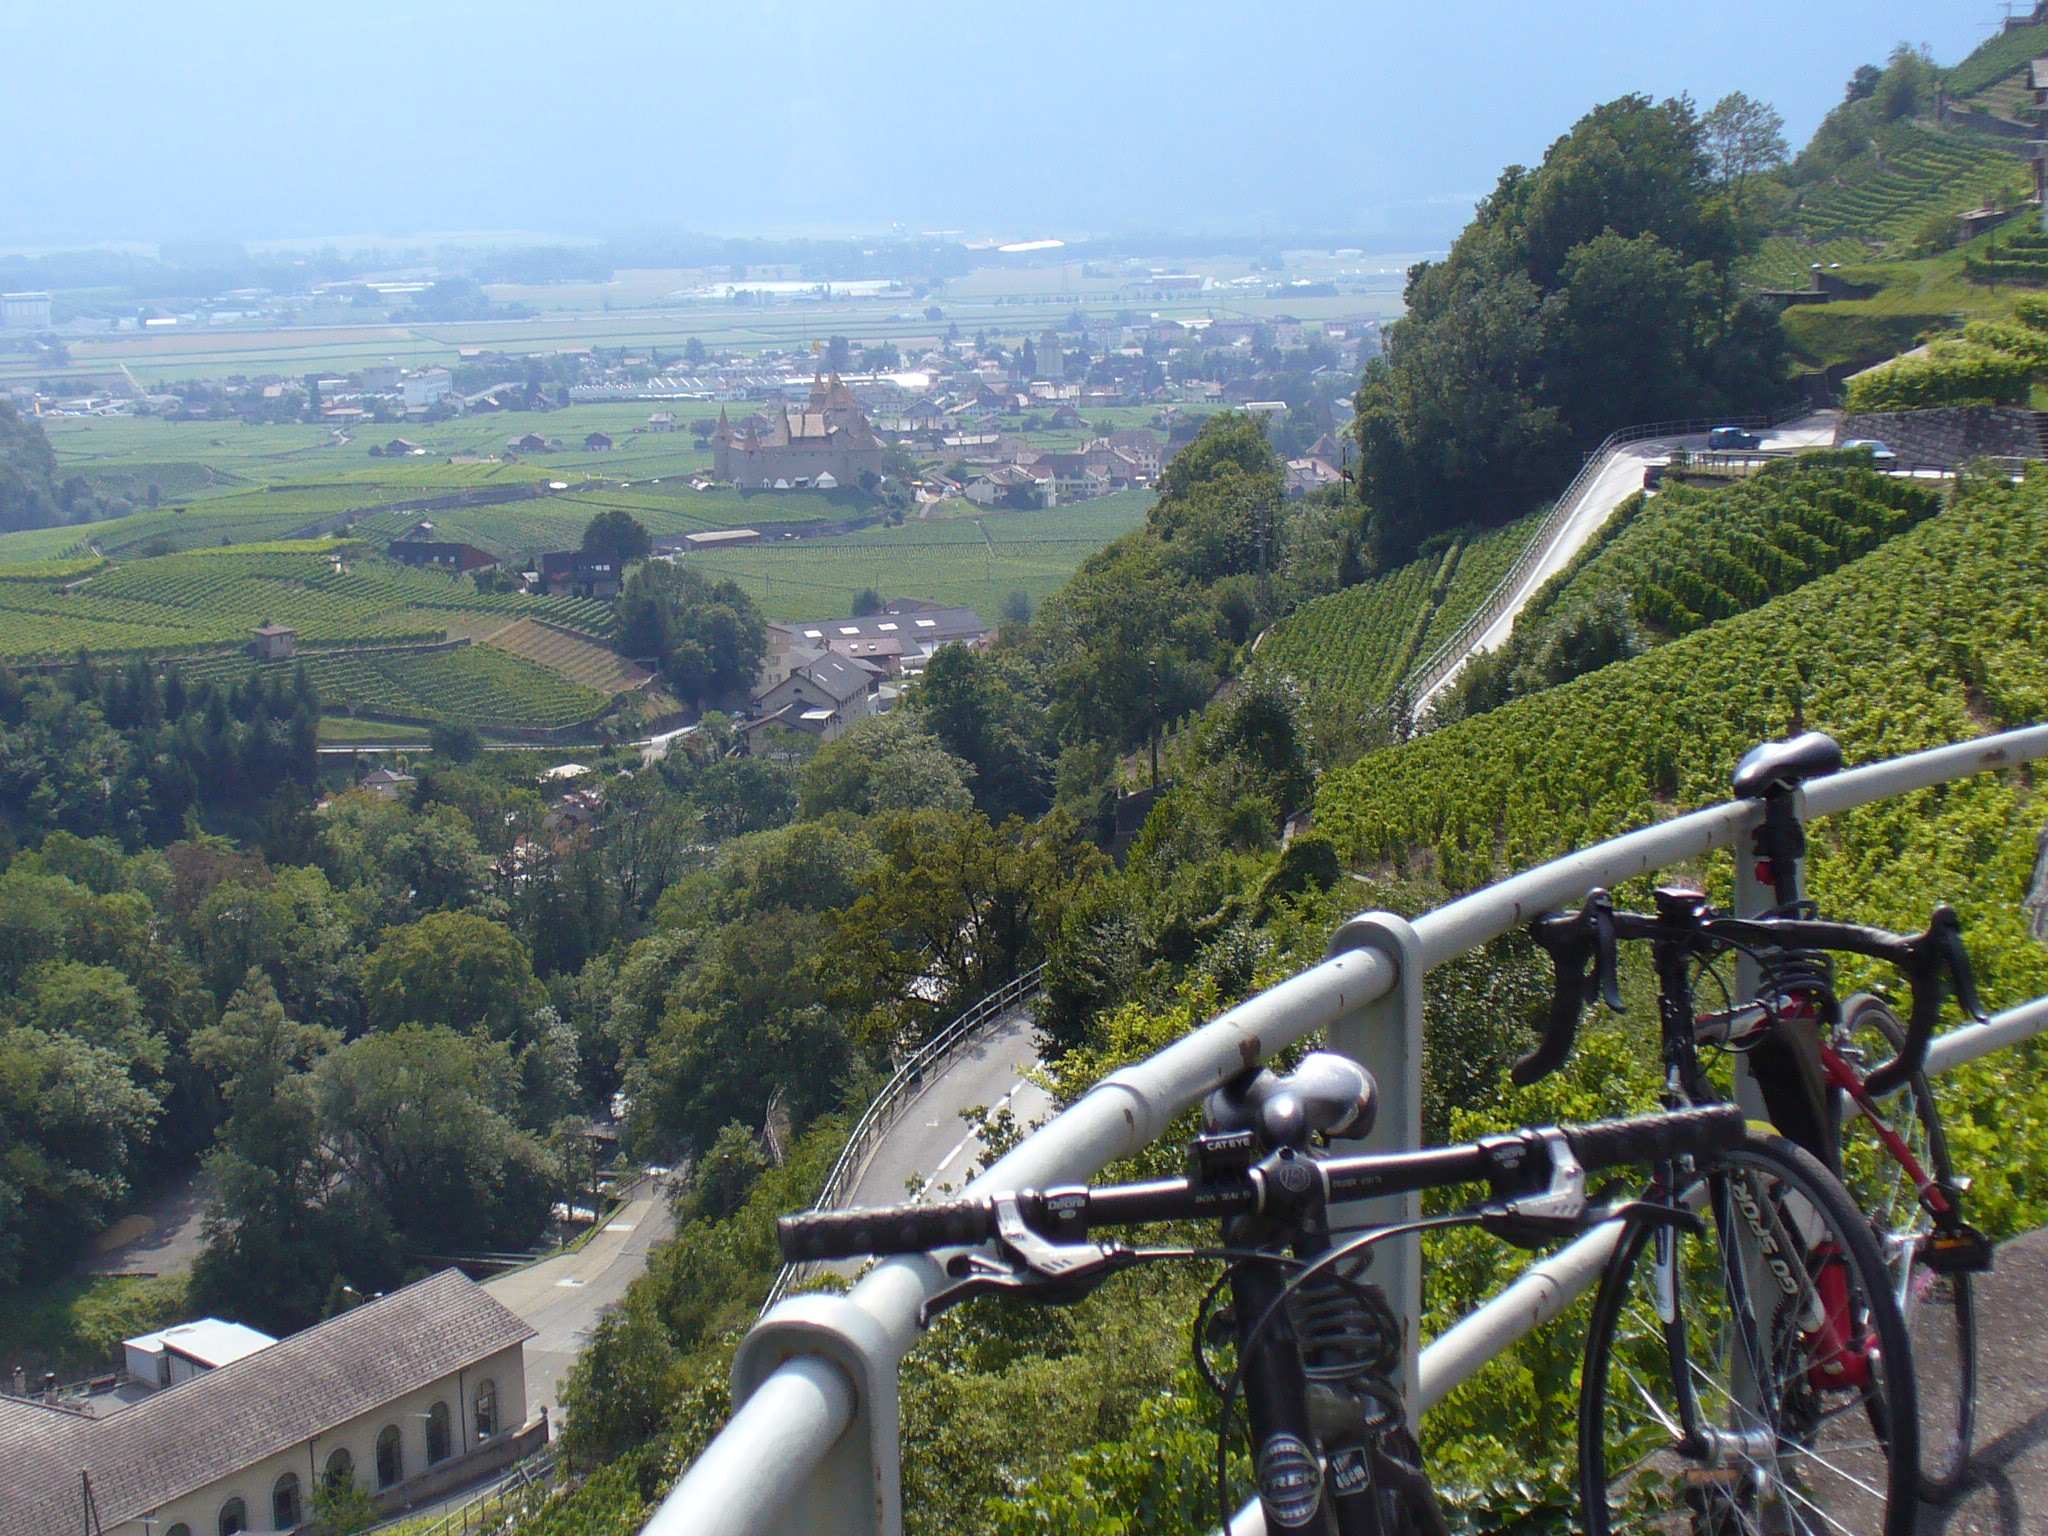 Scenic view of the vineyards of Lavaux